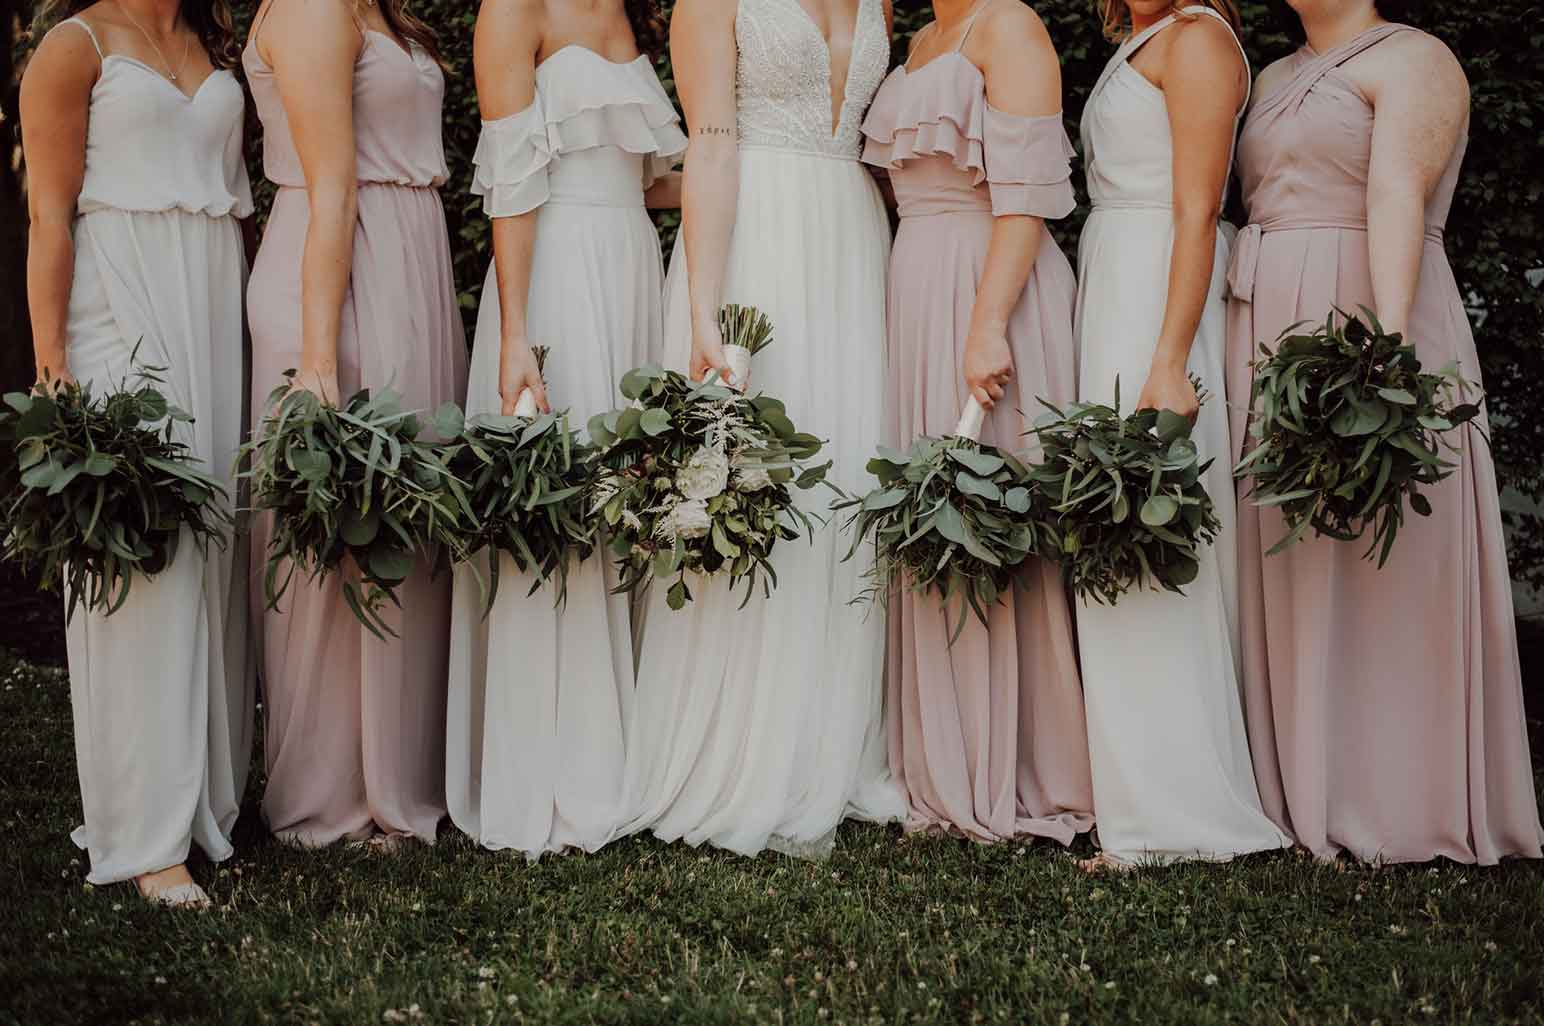 6 Important Things a Maid of Honor Should Do for the Bride